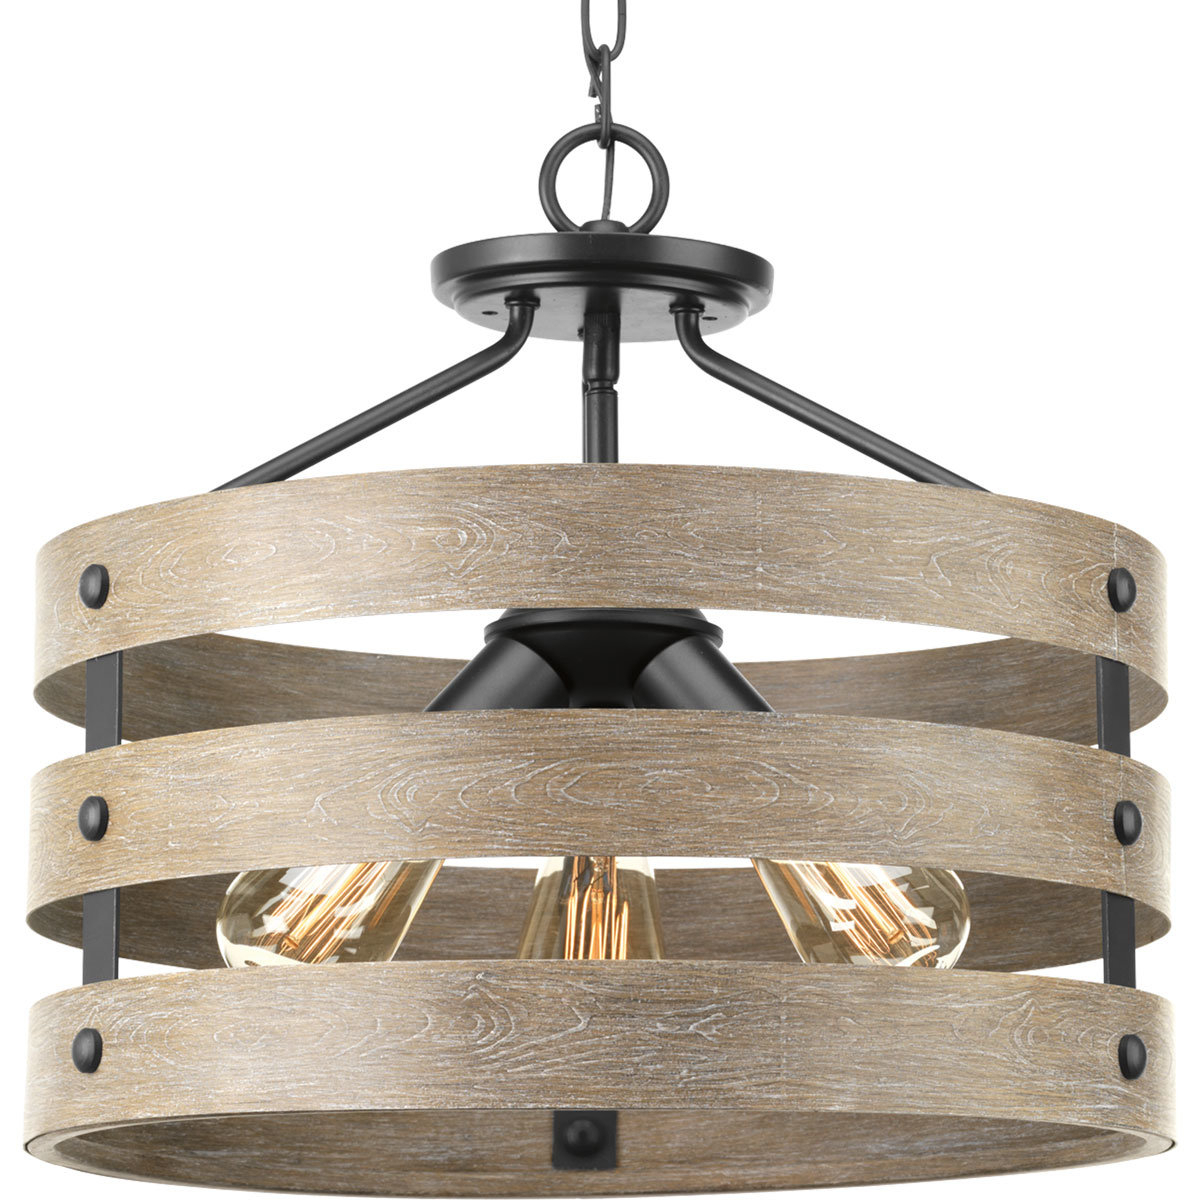 Emaria 3 Light Single Drum Pendant For Best And Newest Emaria 3 Light Single Drum Pendants (Gallery 1 of 25)